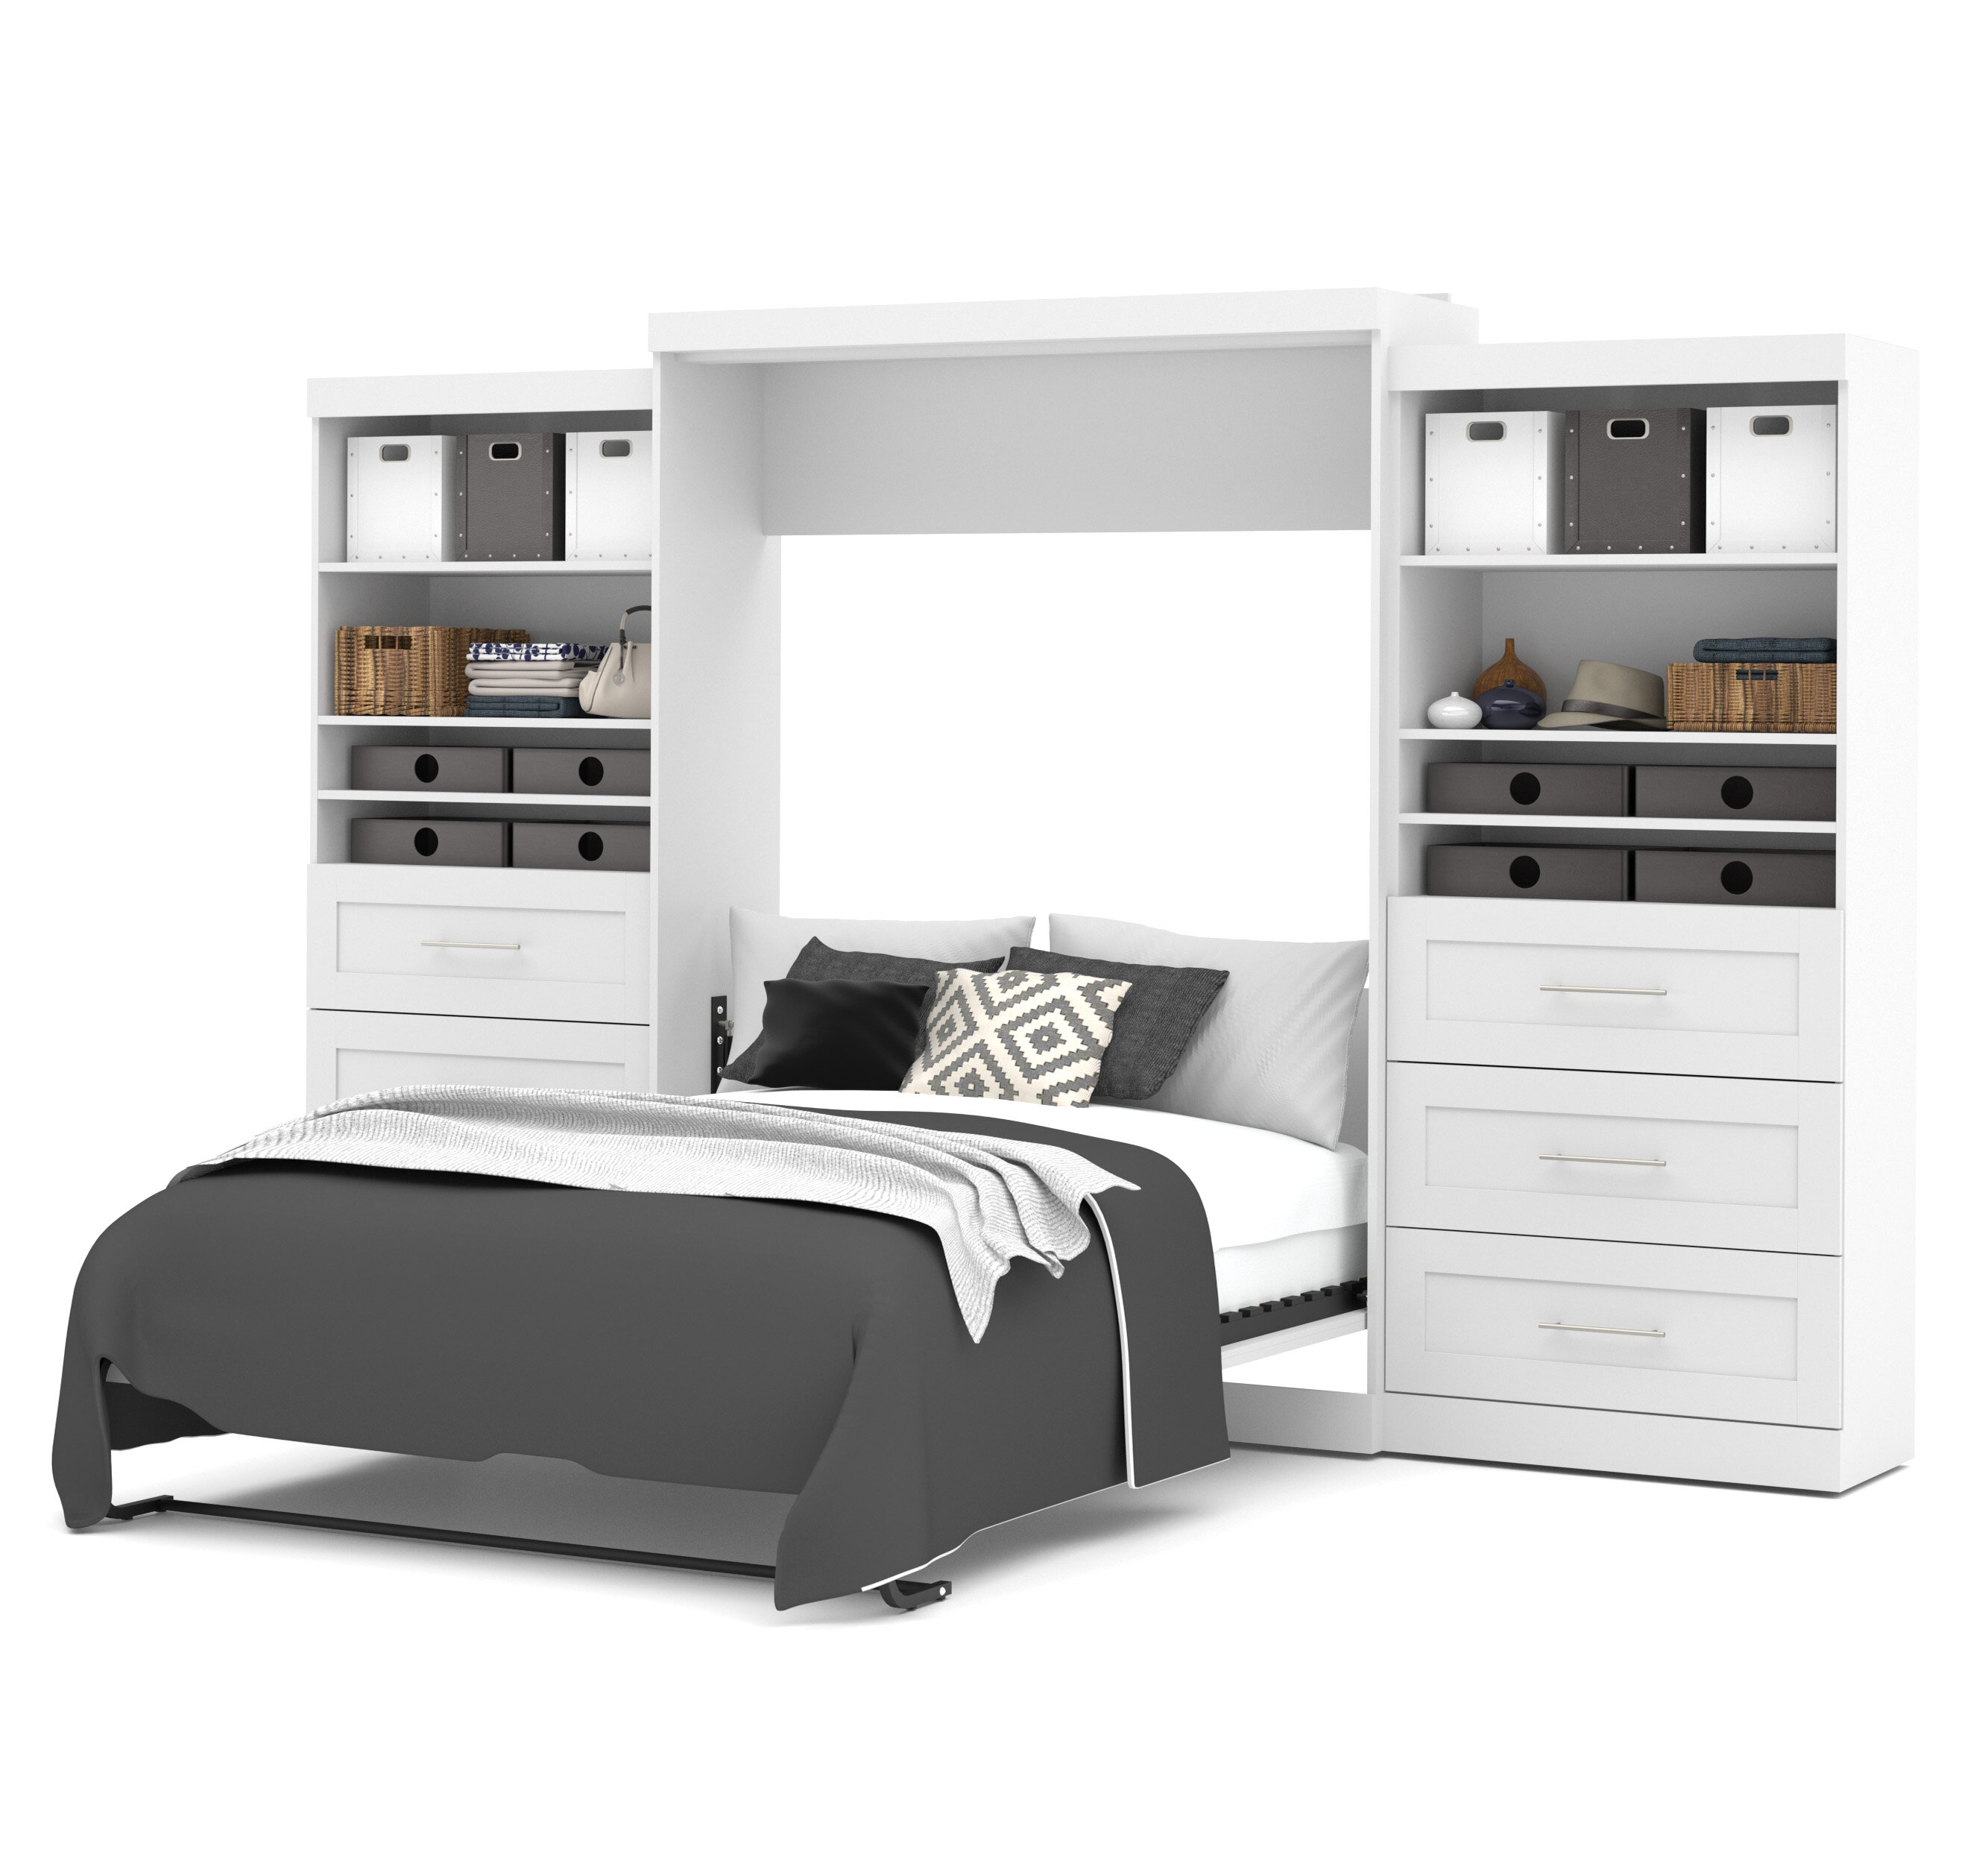 murphy winmark traders bed queen yorker category page index id cabinet name new chain product by